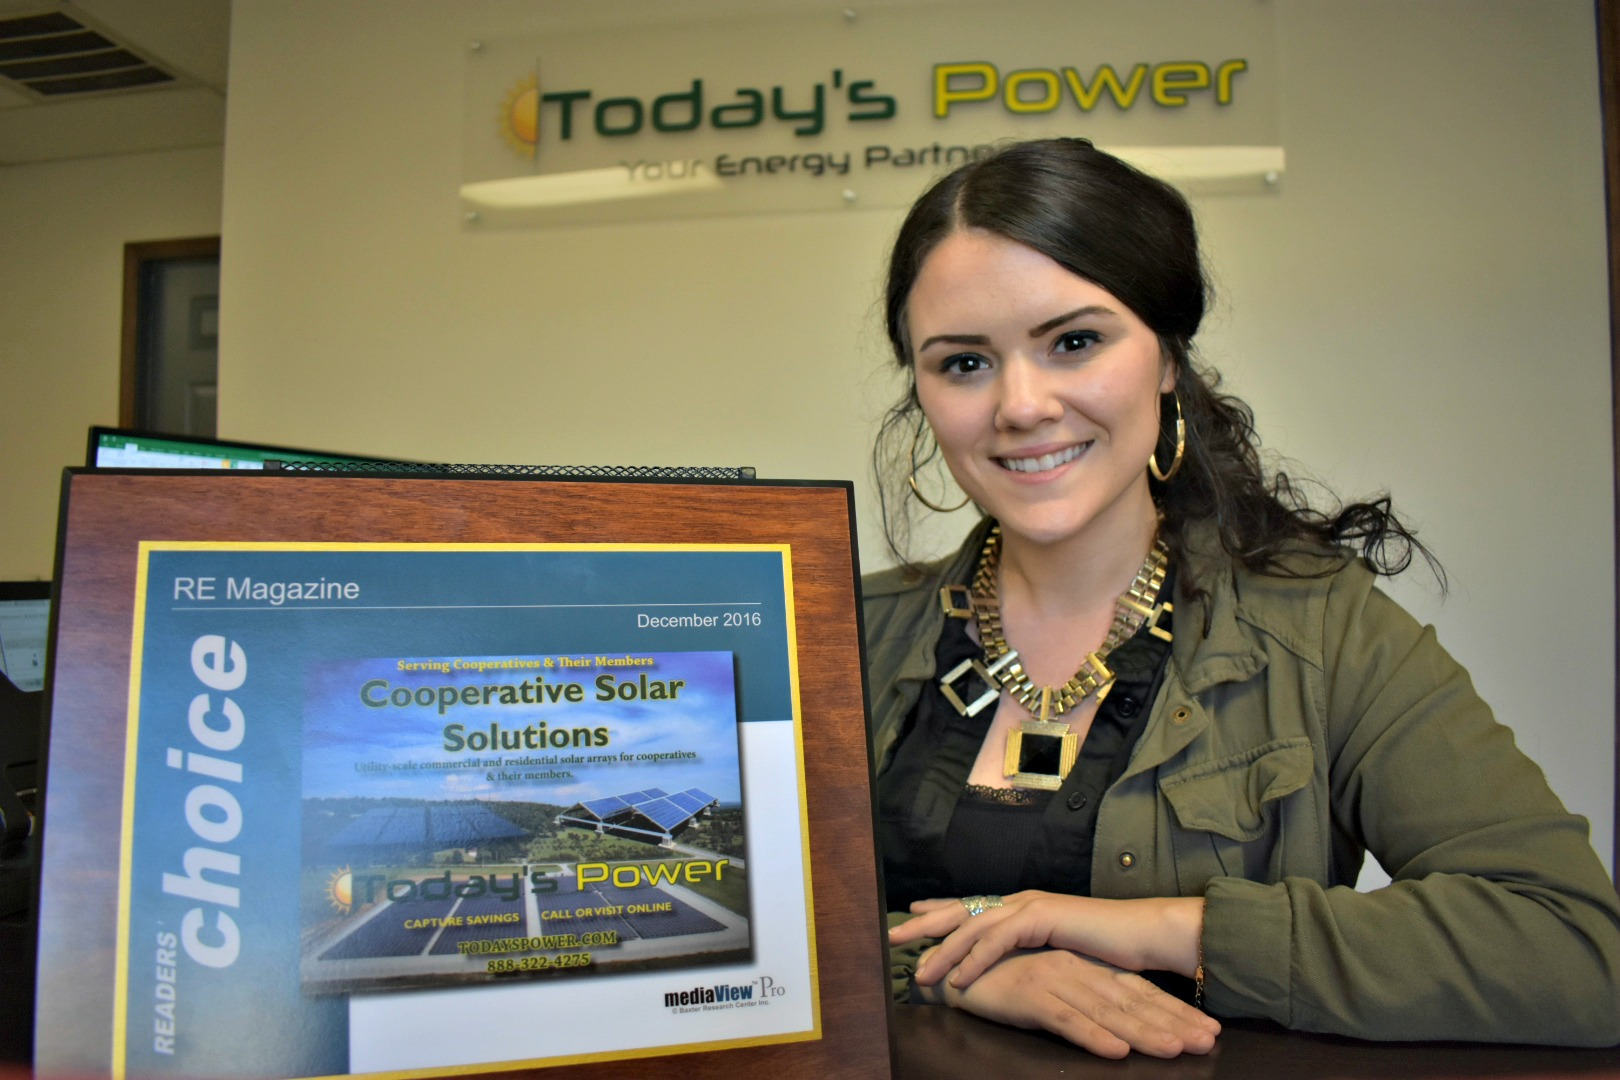 Today's Power's WOW Coordinator, Jennah Denney accepts RE Magazine's Readers' Choice Award